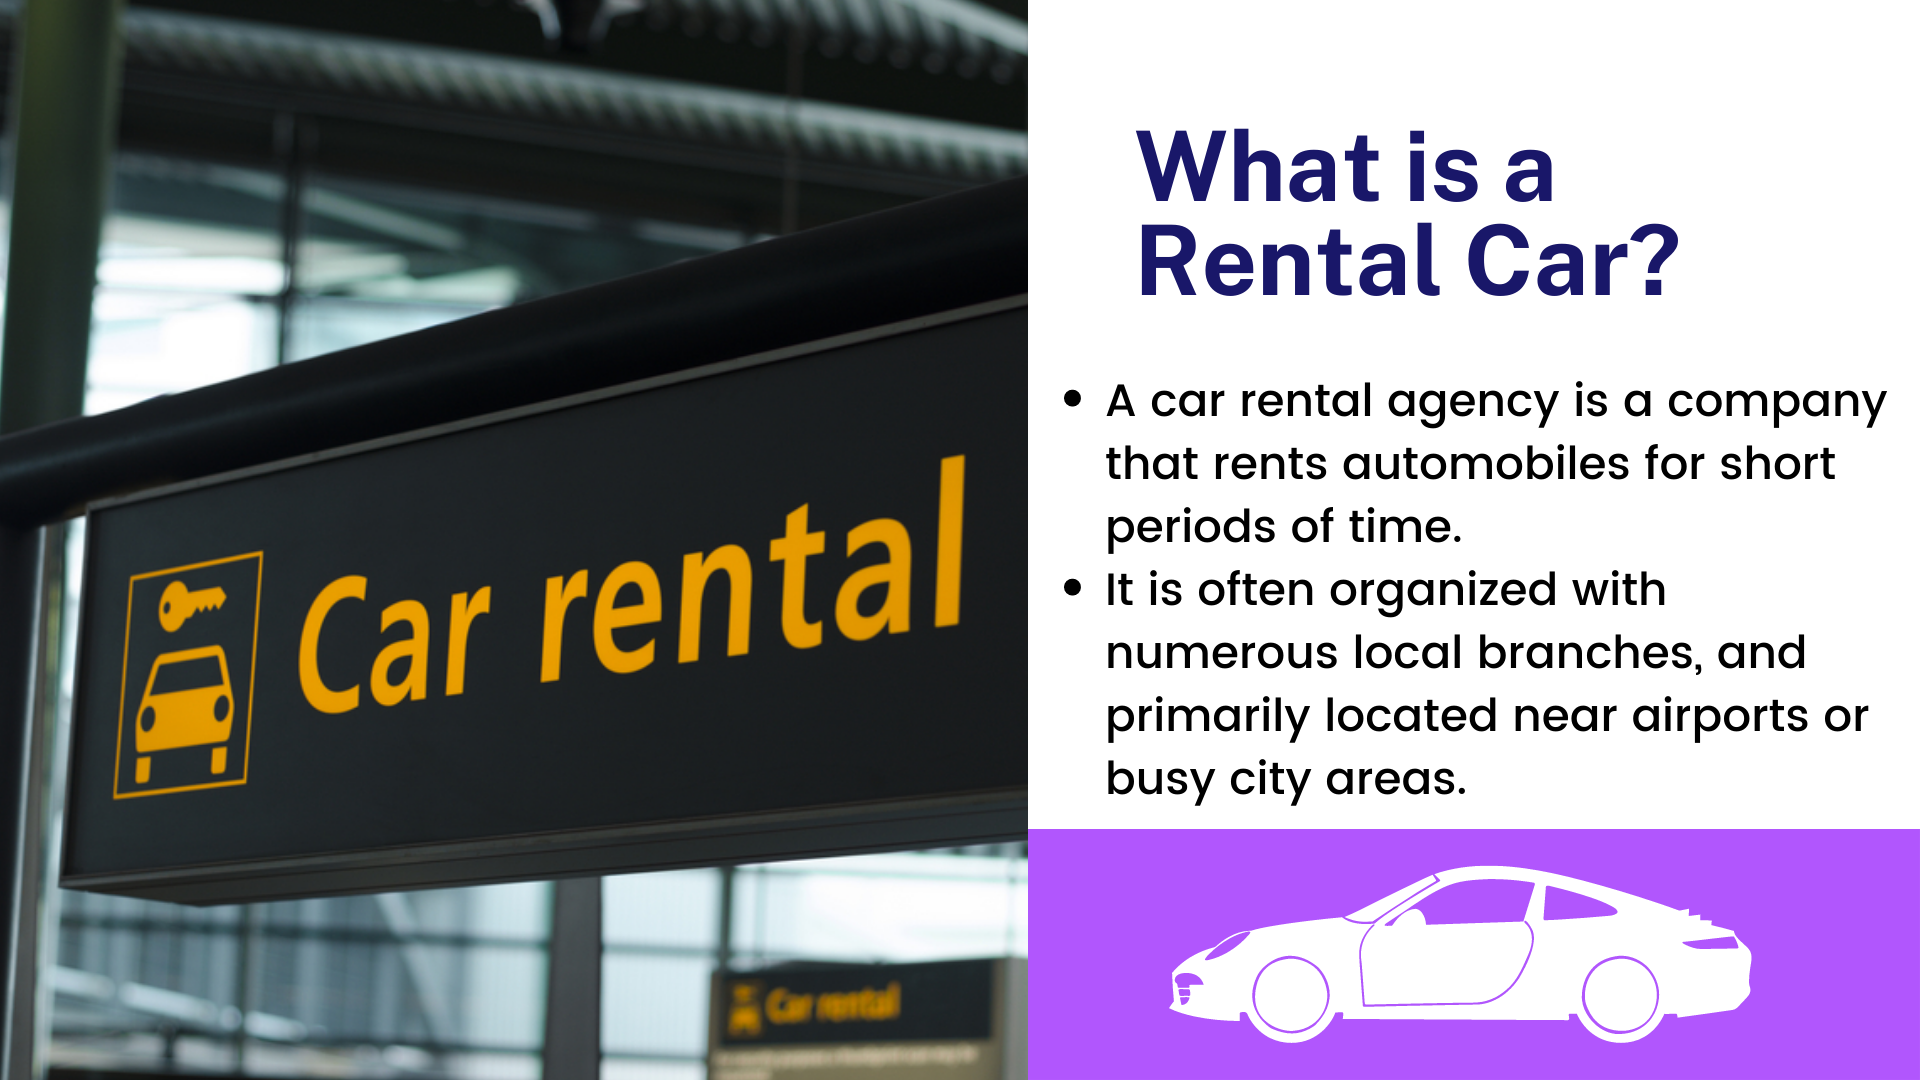 A car rental agency is a company that rents automobiles for short periods of time. It is often organized with numerous local branches, and primarily located near airports or busy city areas.